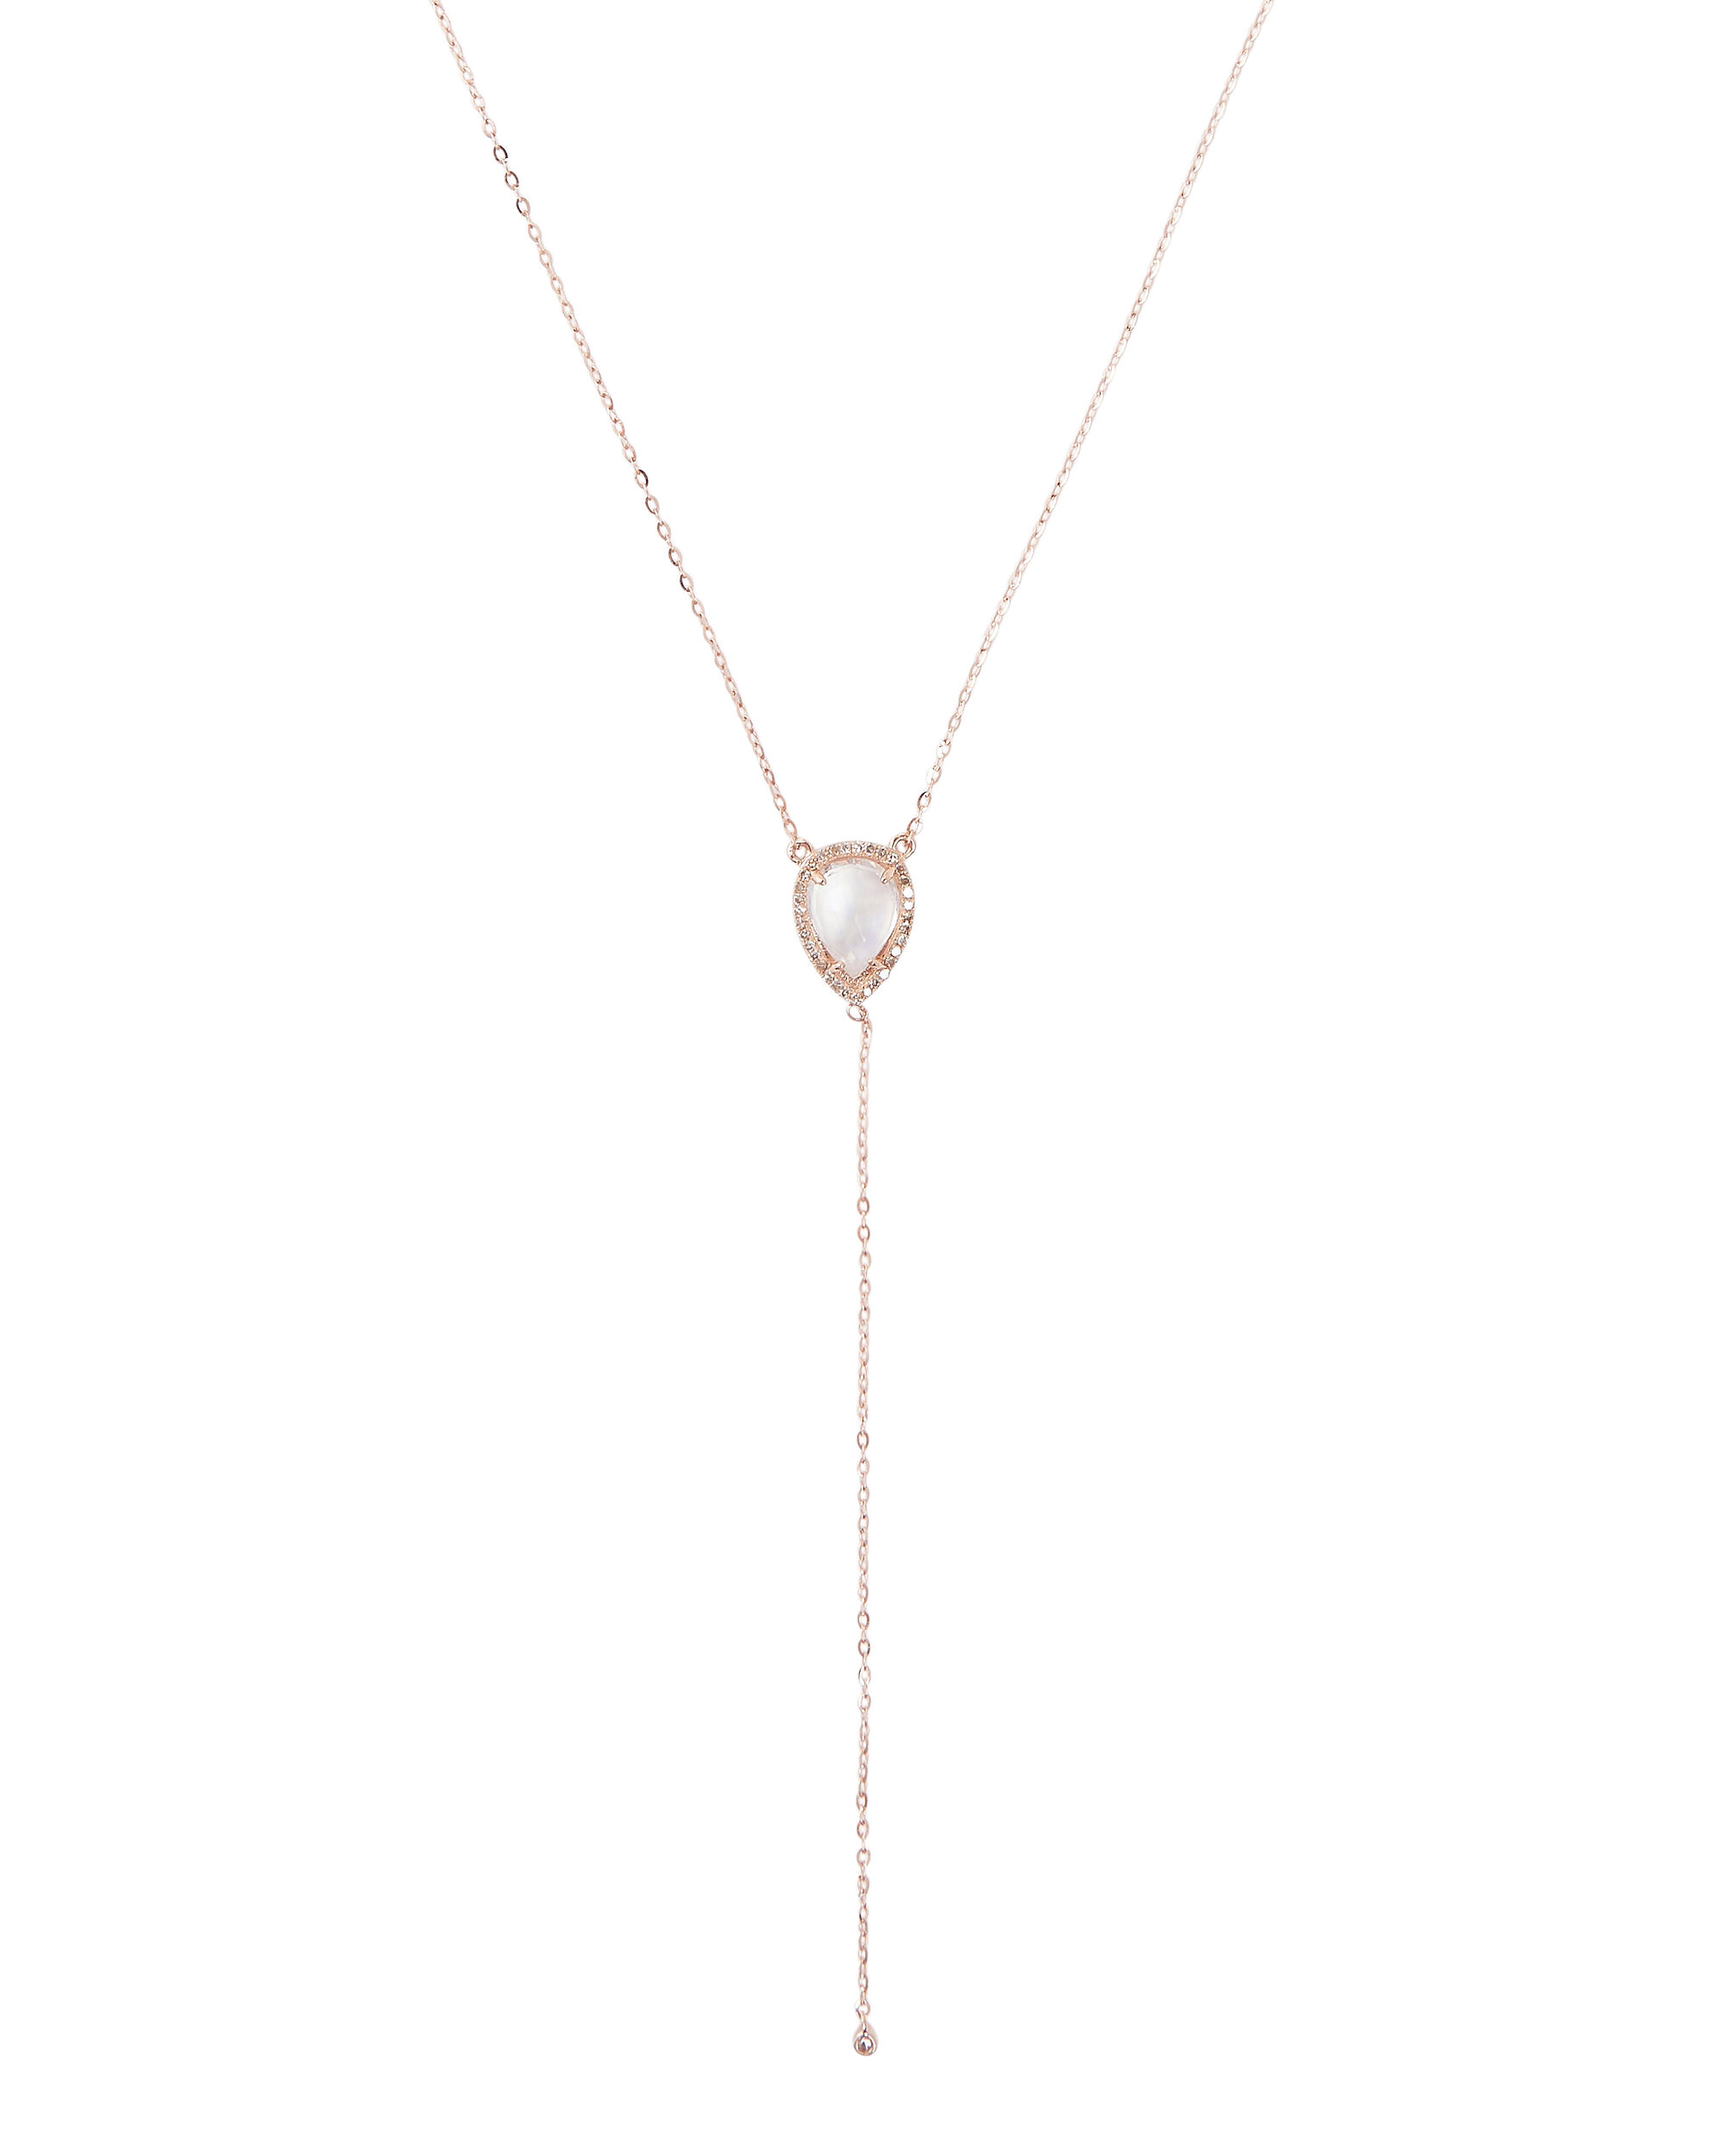 Yael Y Moonstone Necklace, METALLIC, hi-res